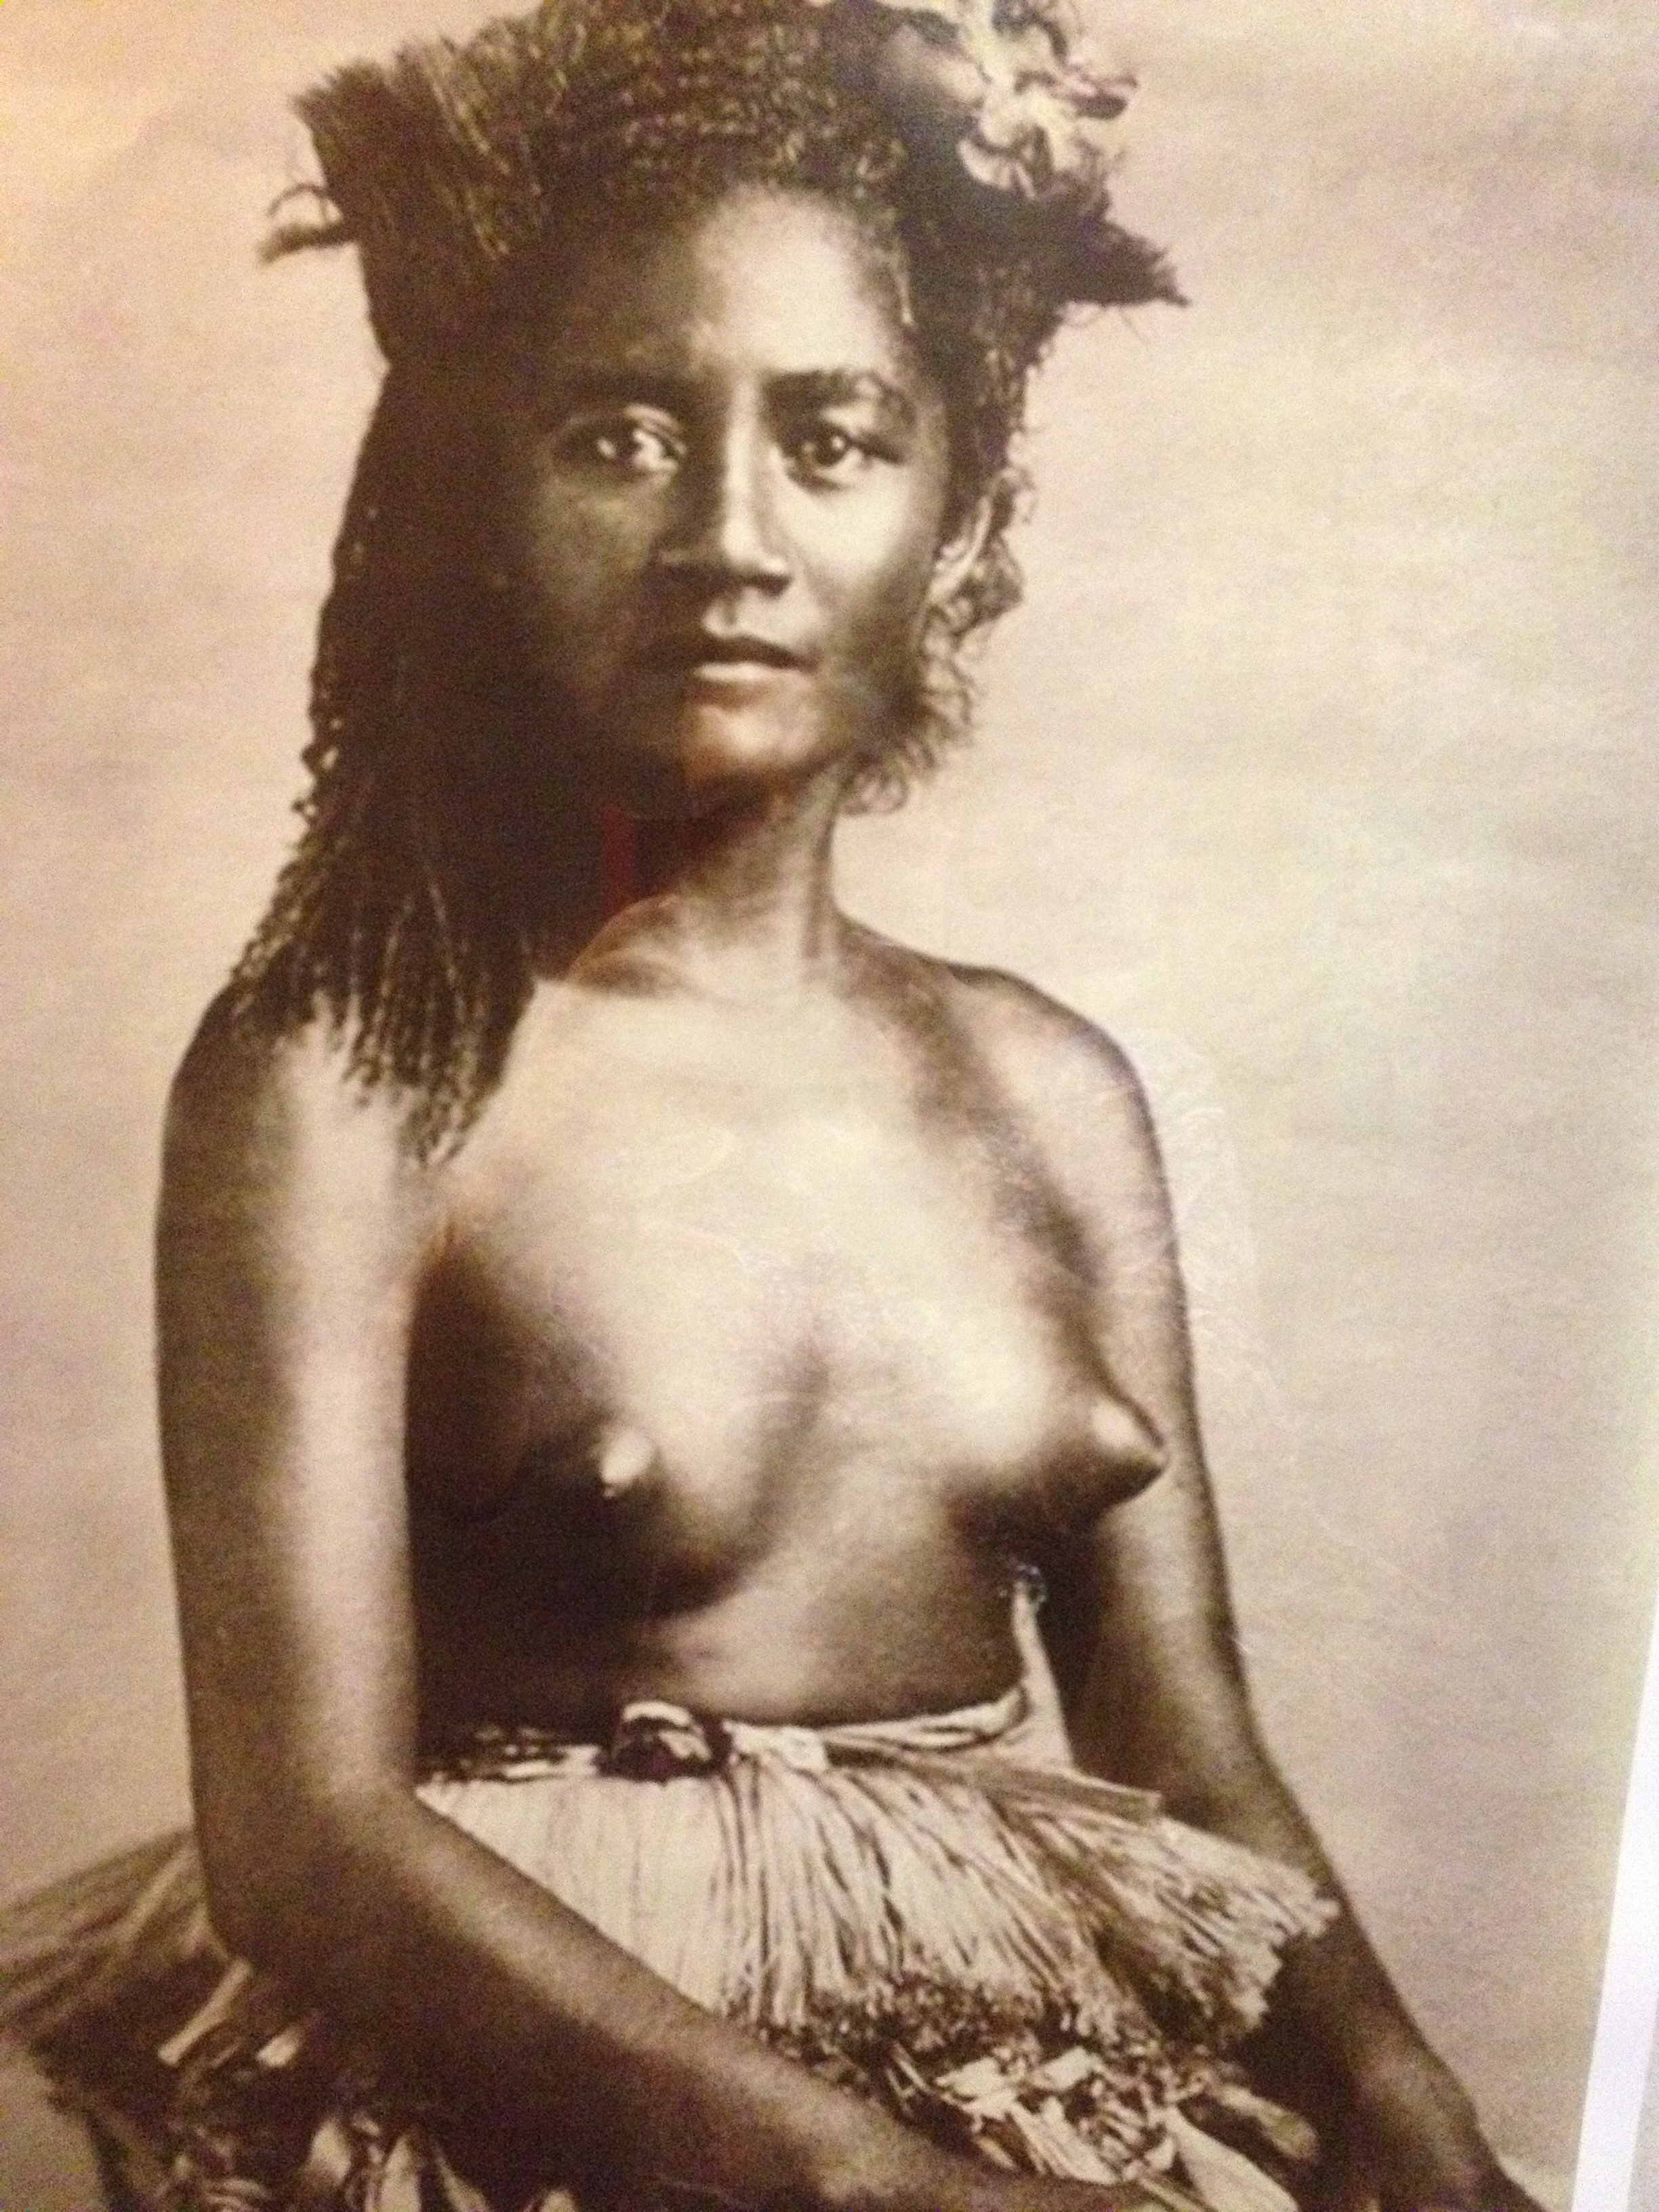 Naked fiji girls — photo 3